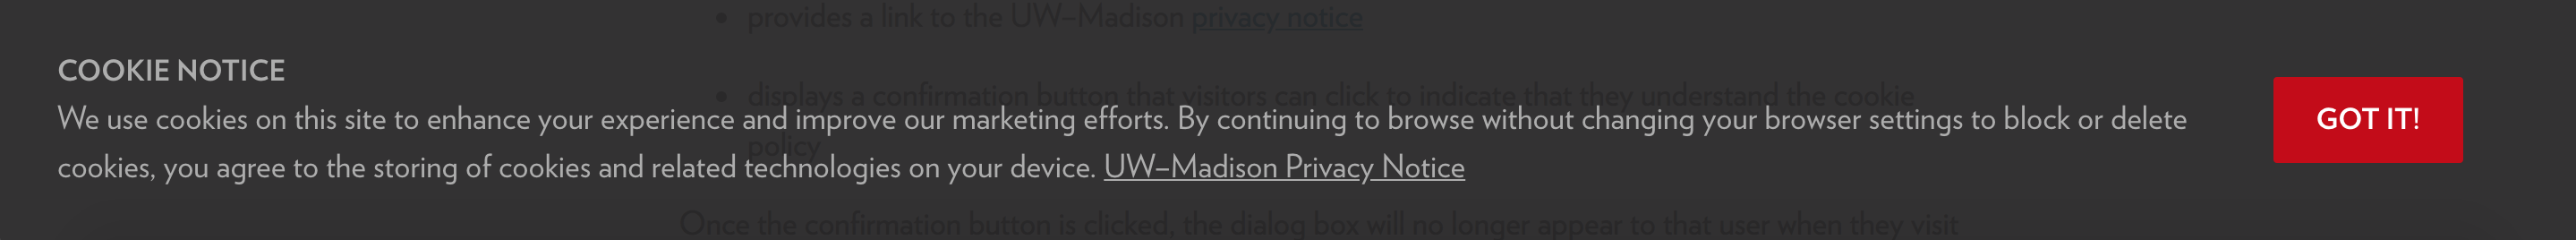 The UW-Madison GDPR cookie consent message